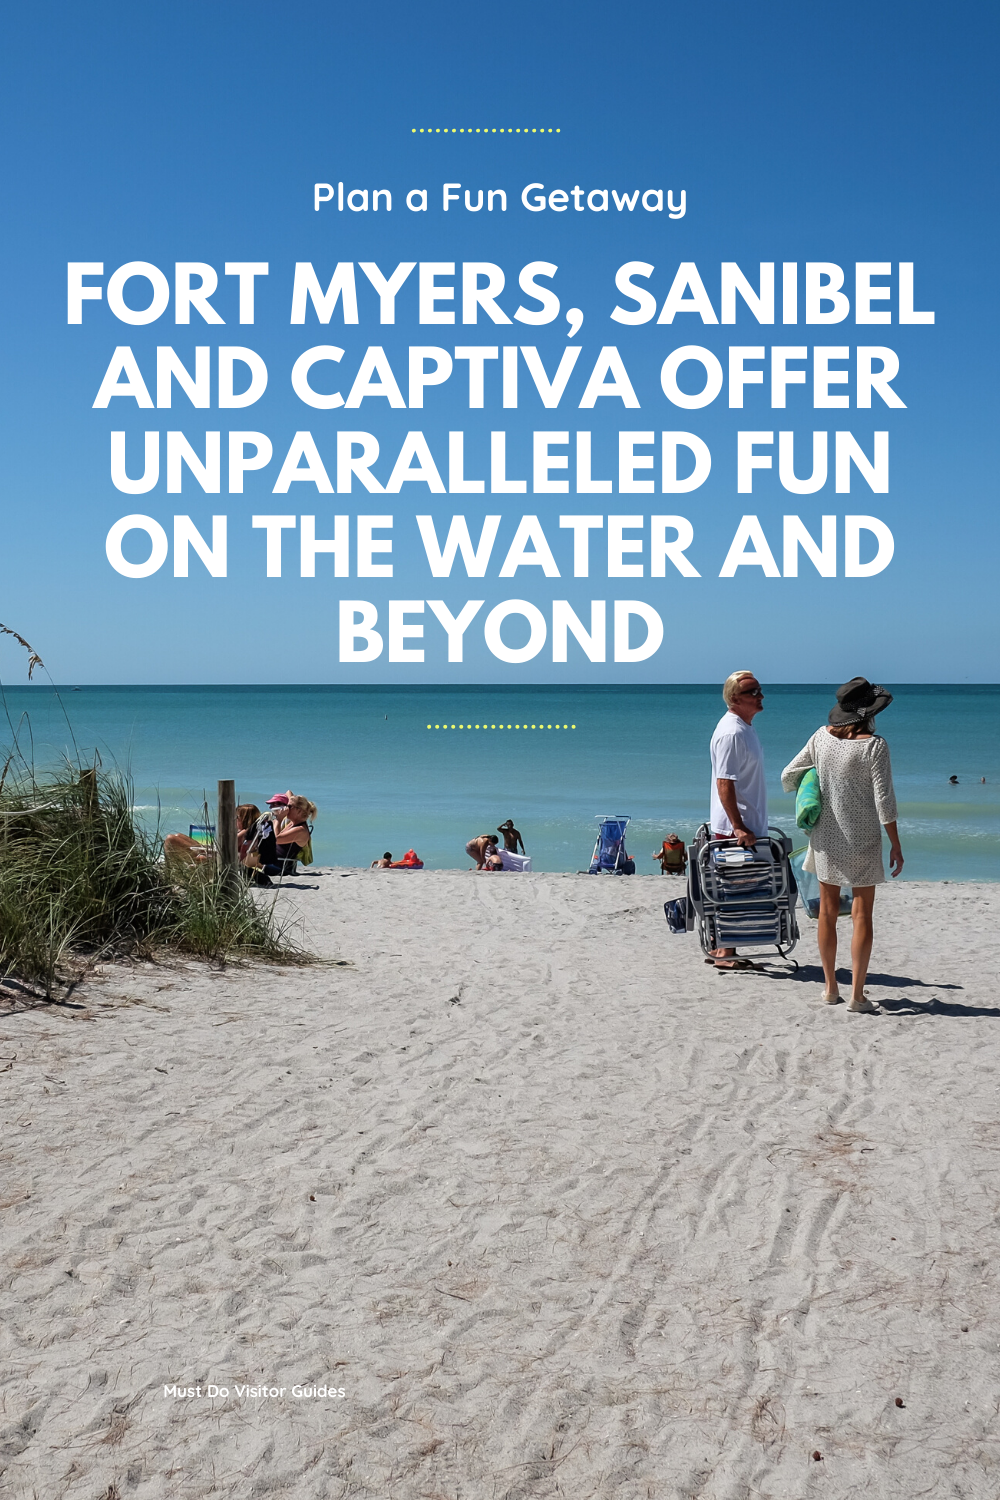 Fort Myers, Sanibel and Captiva offer unparalleled fun on the water and beyond. Ways to enjoy Fort Myers, Sanibel, and Captiva on the beach and beyond from budget friendly family activities, to outdoor restaurants on the water, to eco-tours and parks. Must Do Visitor Guides | MustDo.com